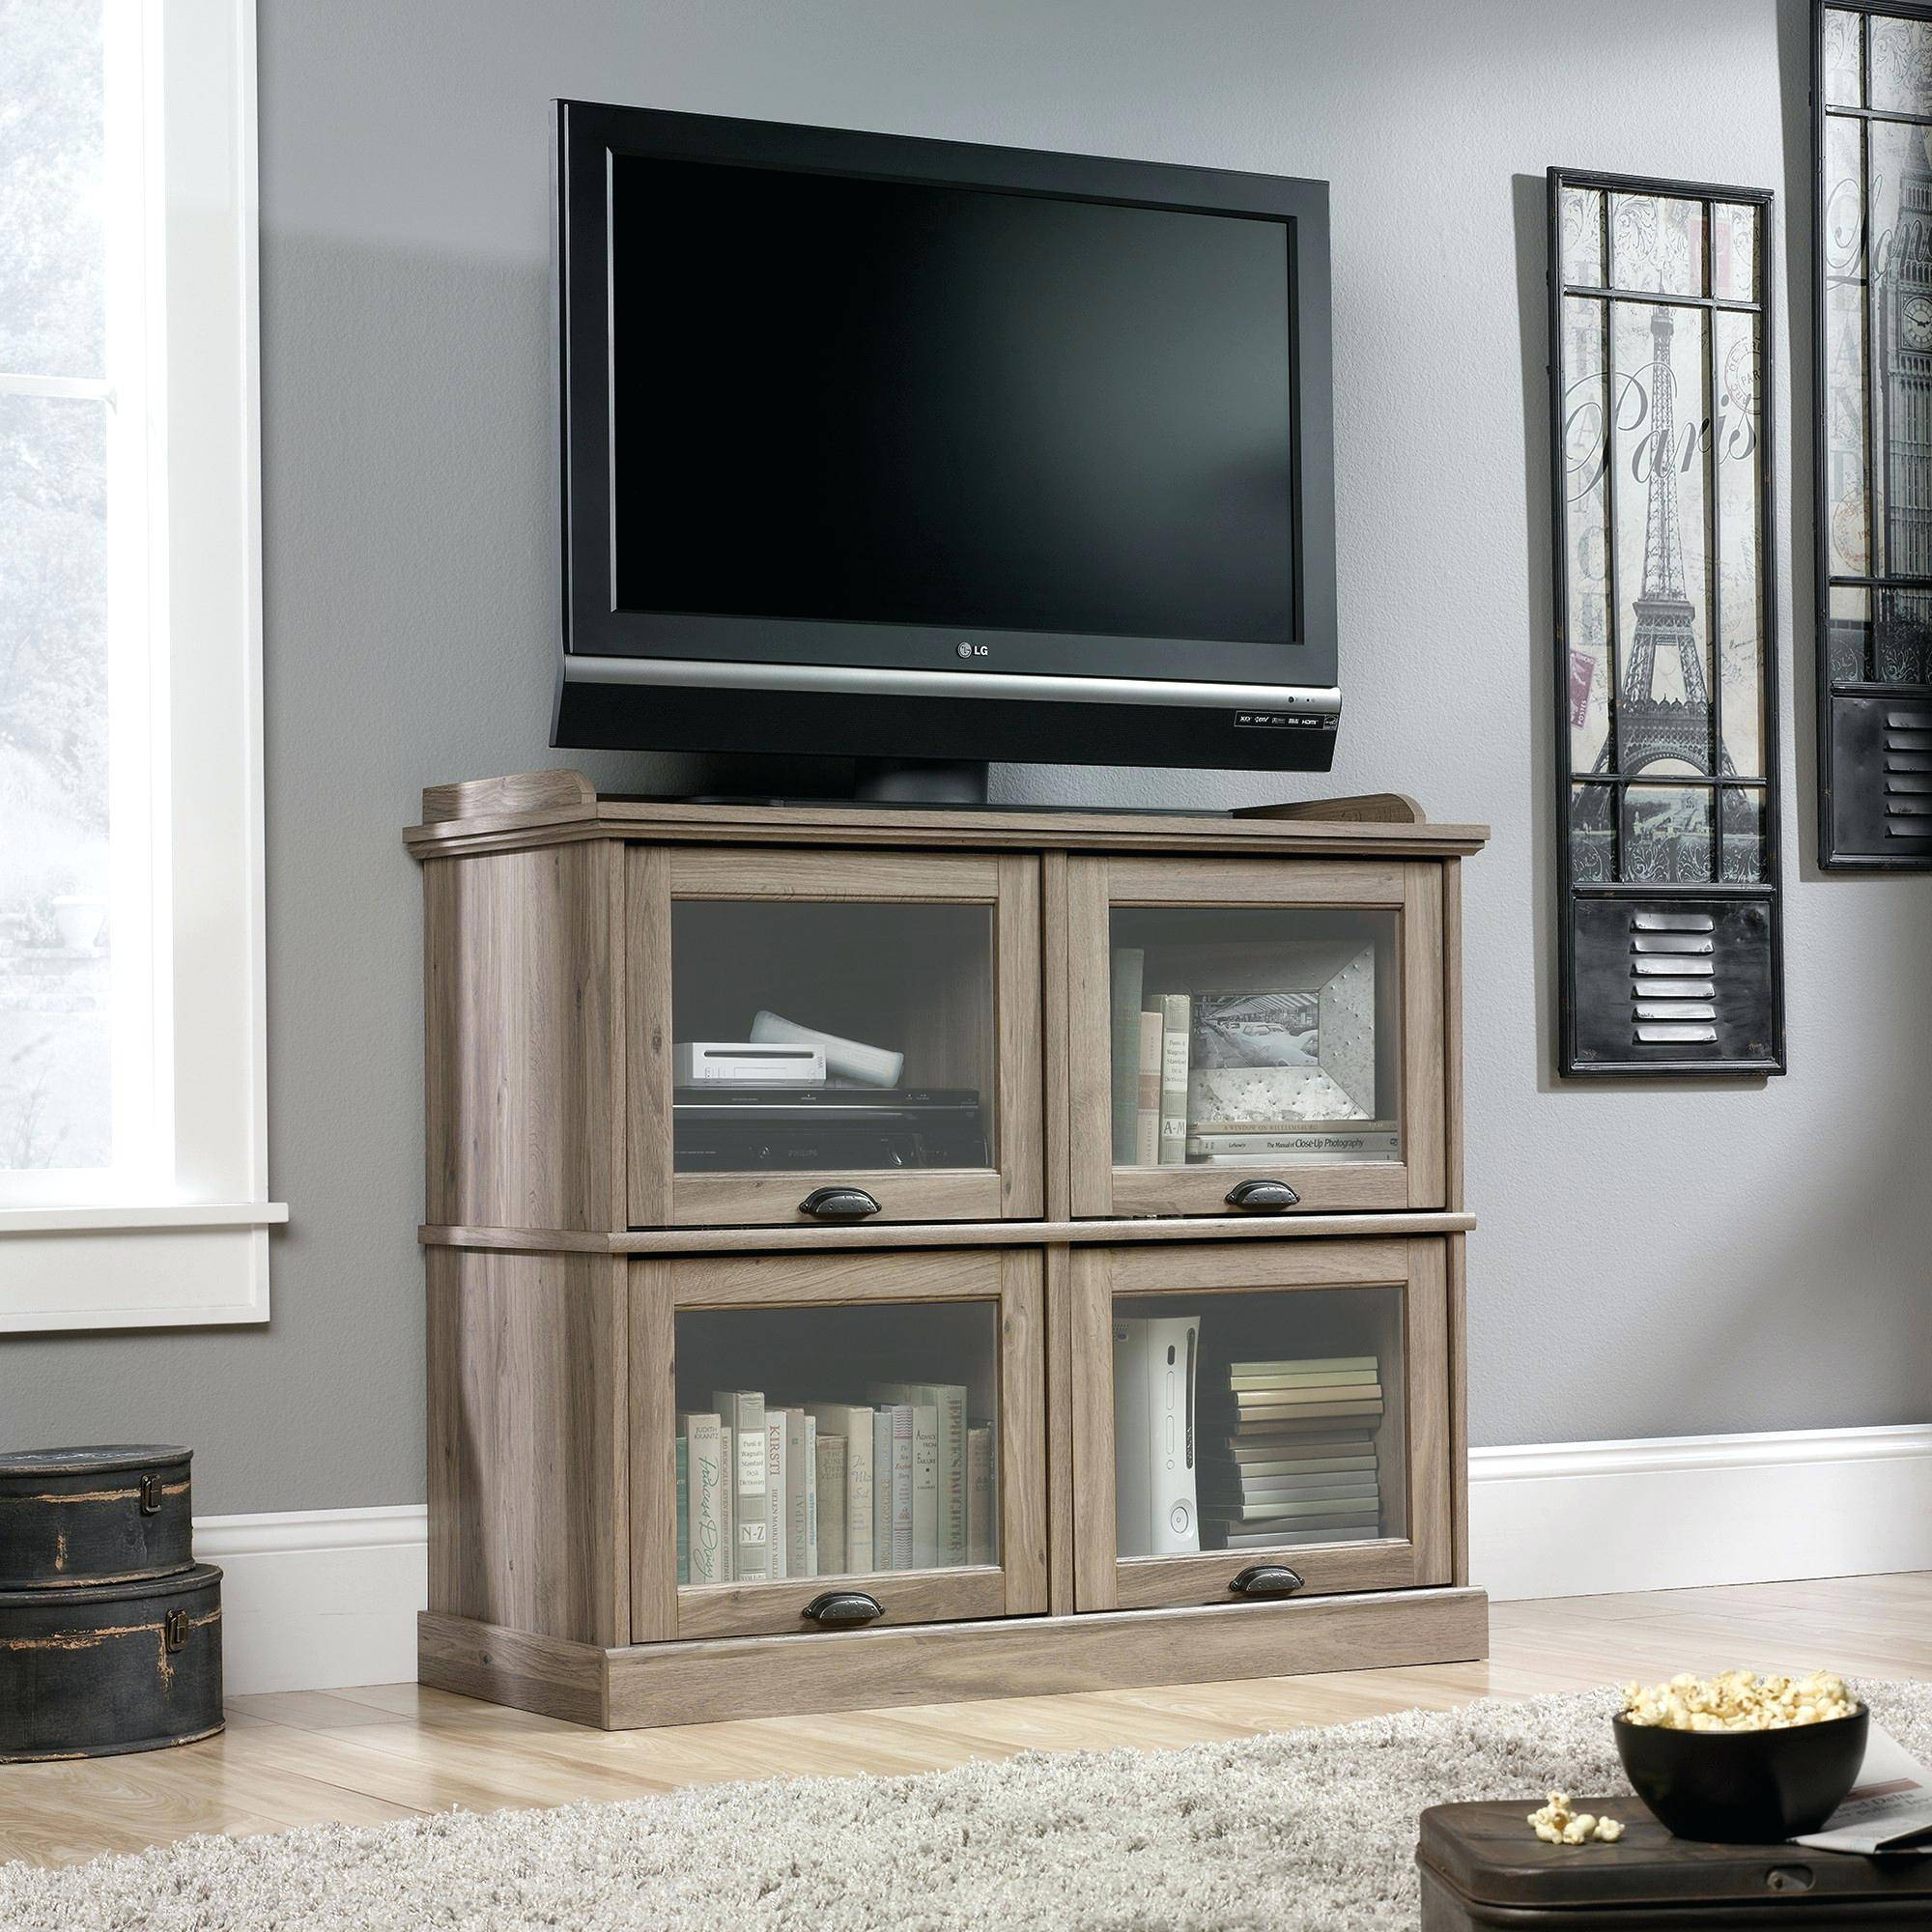 Tv Stand : Tv Stand Ideas 15 Television Stands At Walmart Corner Throughout Cornet Tv Stands (View 12 of 15)